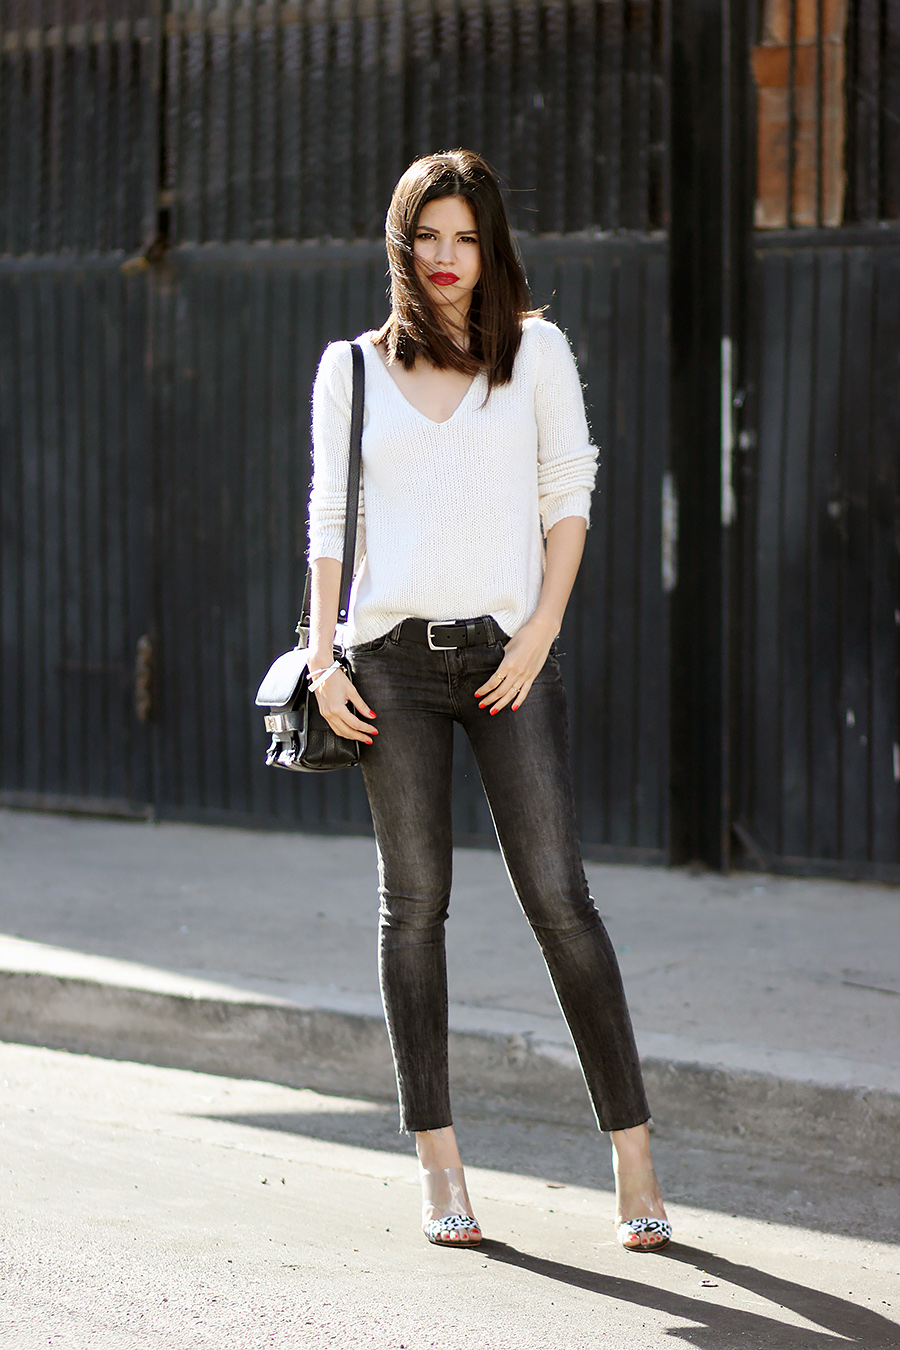 Adriana Gastélum Is Wearing Black Stone Washed Jeans From Pull & Bear, V-Neck White Jumper, PS11 Bag And Mules From Guess